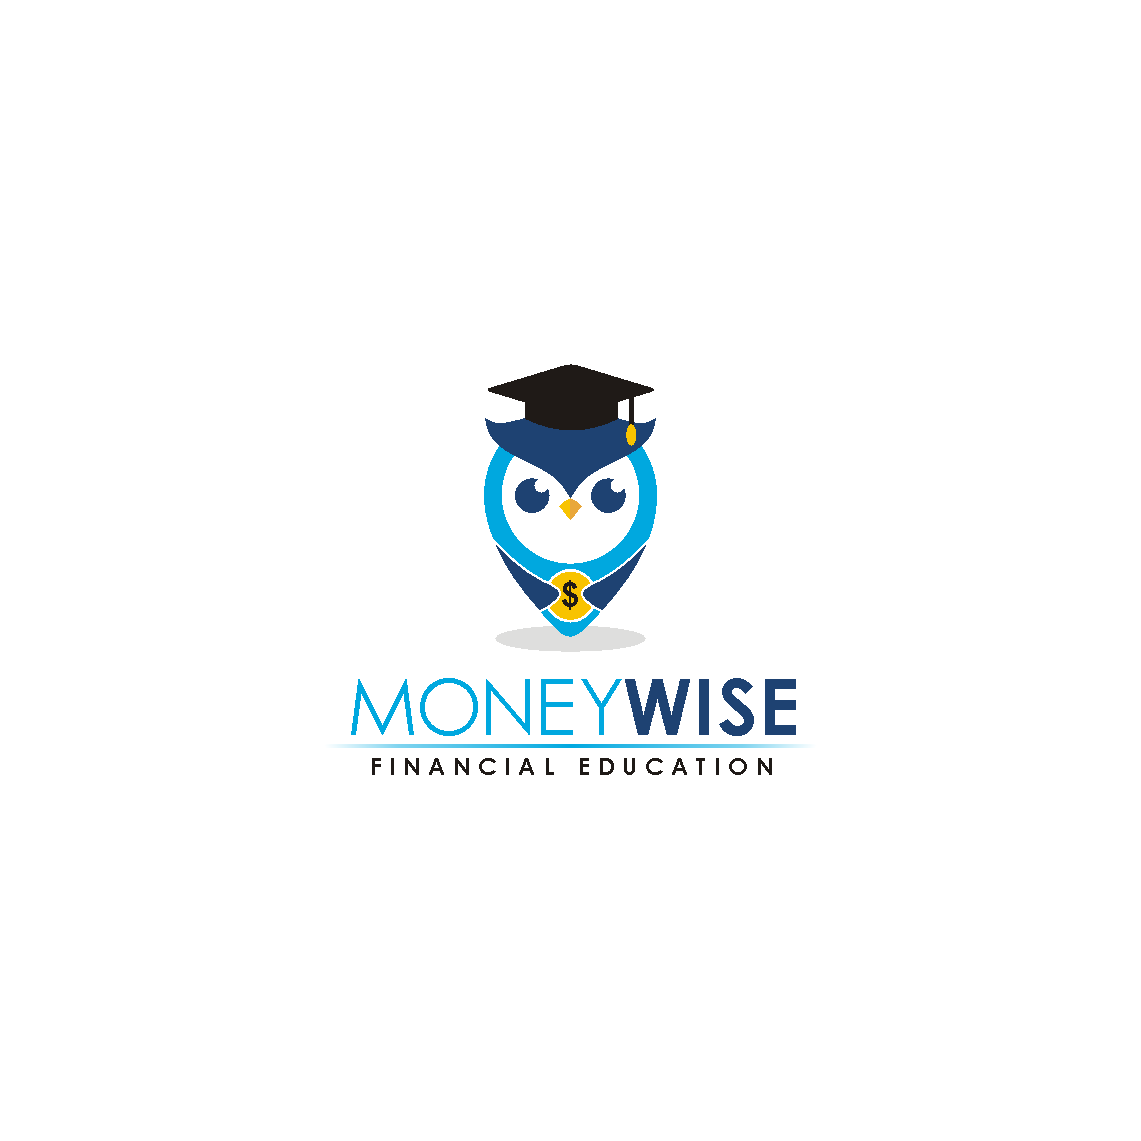 Create an inspirational logo for MoneyWise